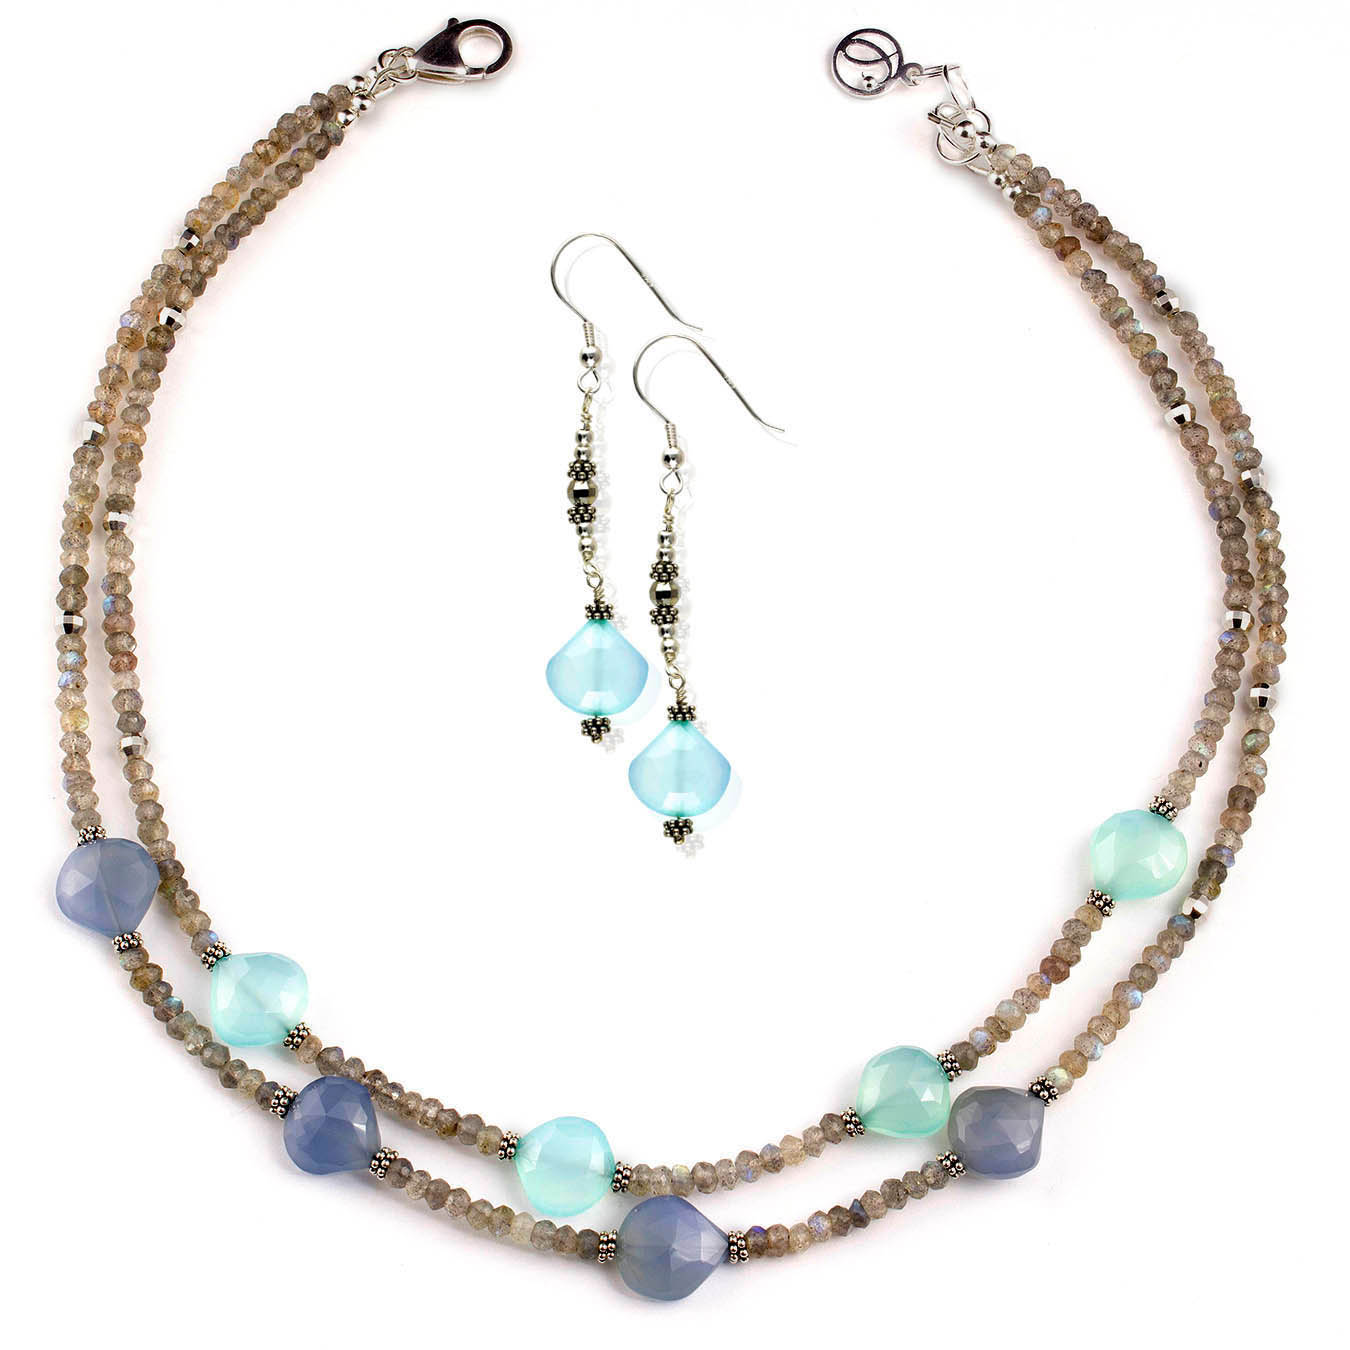 Handcrafted labradorite and chalcedony double strand station necklace